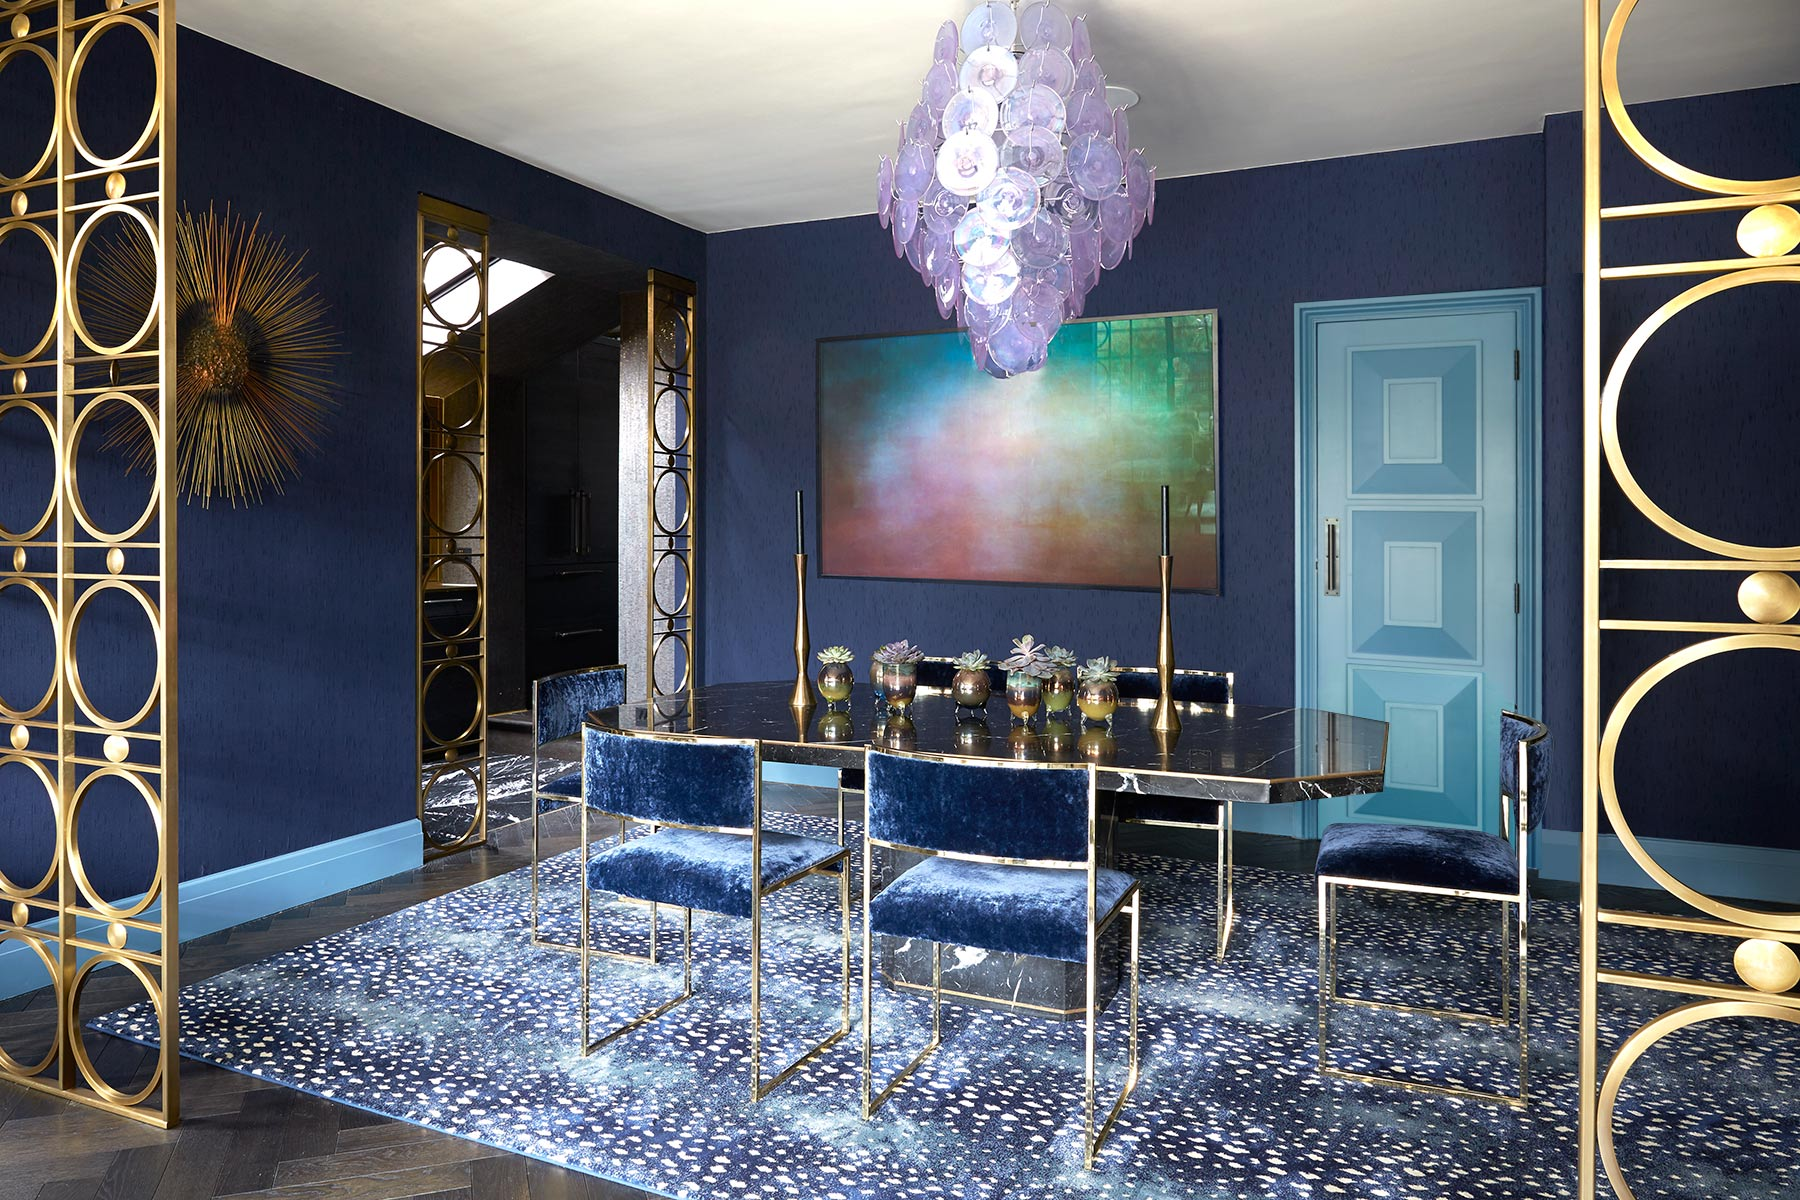 luxury interior Glamorous Blue and Gold Dining Room with Purple Glass Chandelier and Blue Velvet Dining Chairs Designed by Trilbey Gordon